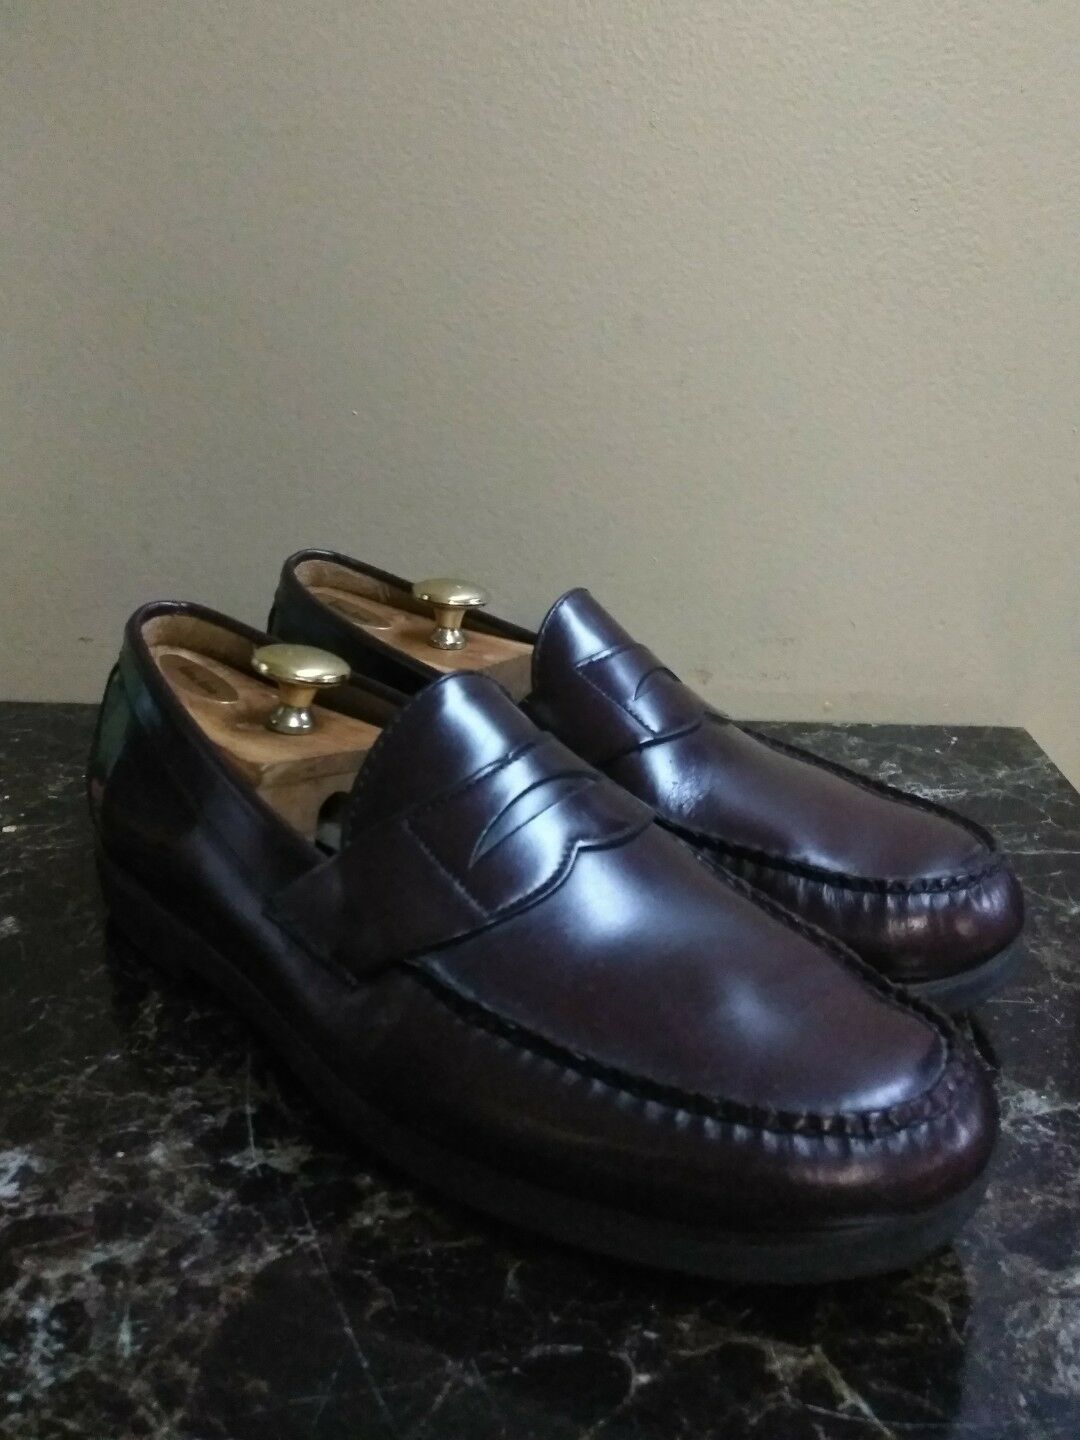 SEBAGO Classic Burgundy Penny Loafers HAND SEWN Made In USA Moc-Toe Size 11.5 M